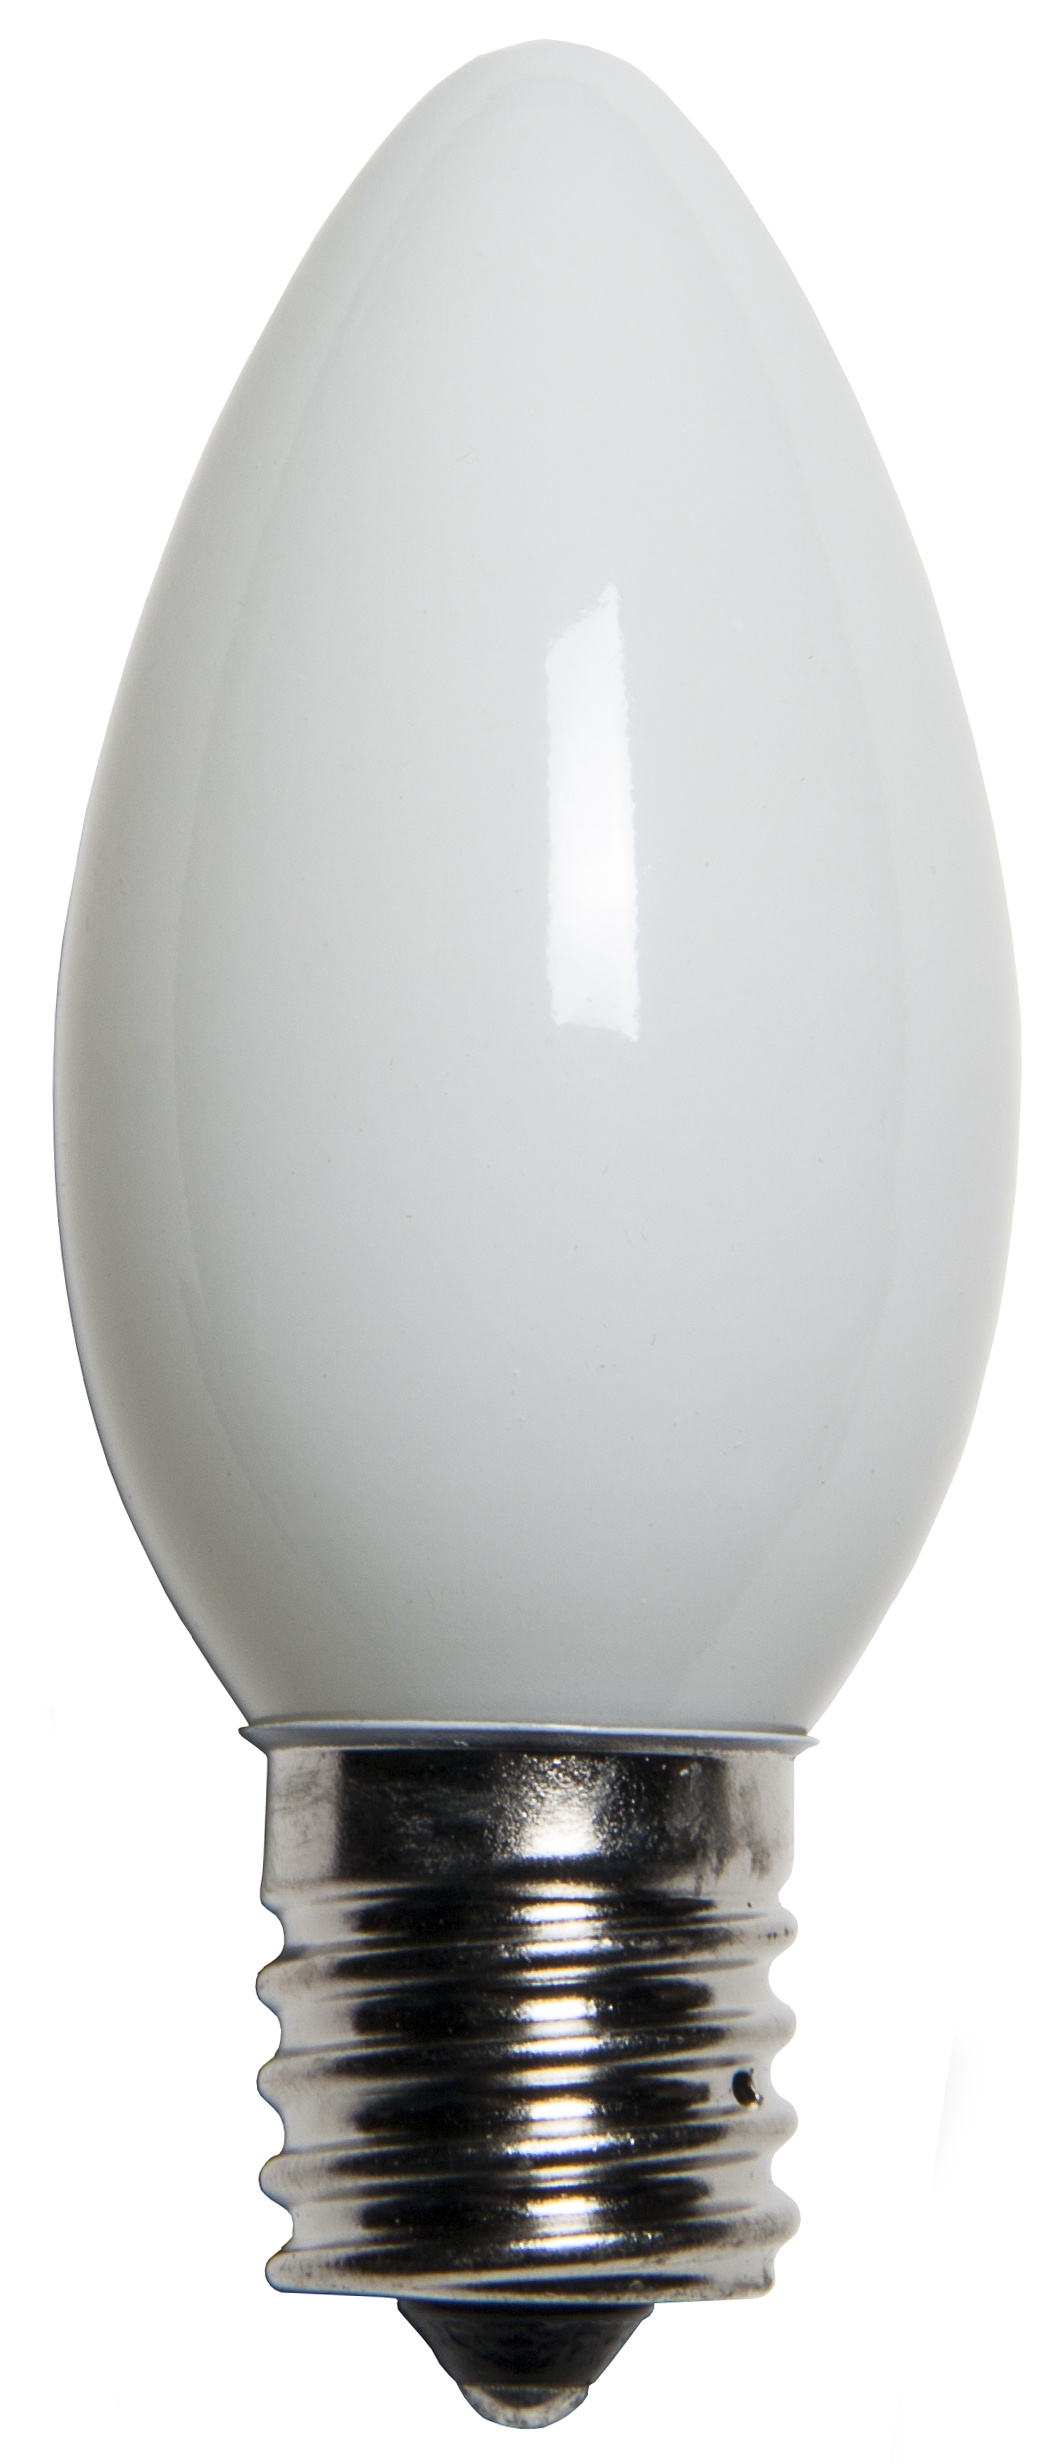 C9 Christmas Light Bulb C9 White Christmas Light Bulbs Opaque